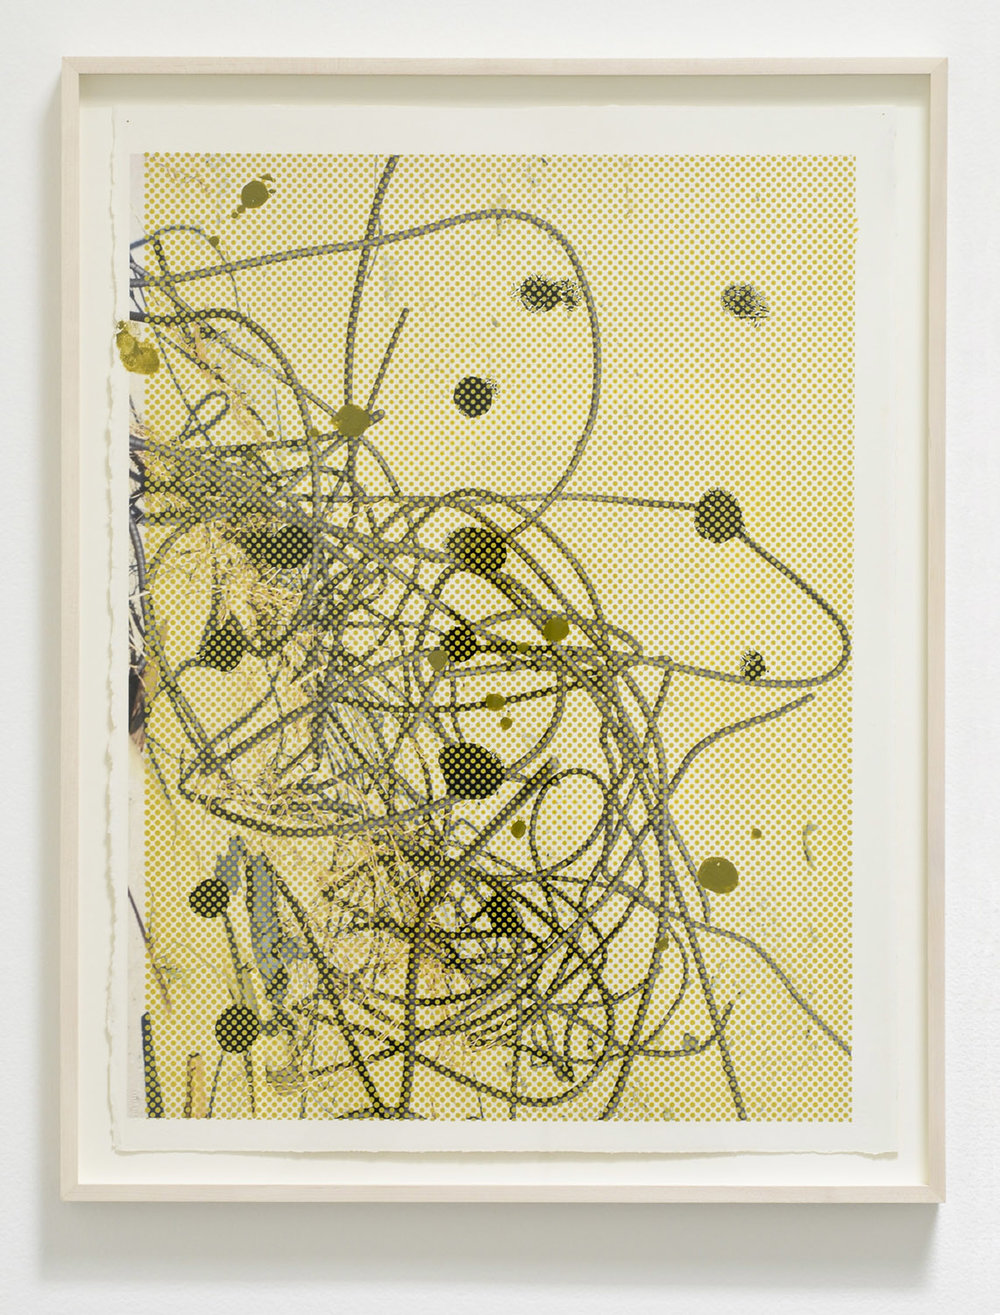 Untitled, 2013  Acrylic and UV cured ink on paper  33 x 25-1/2 inches  83.82 x 64.77 cm